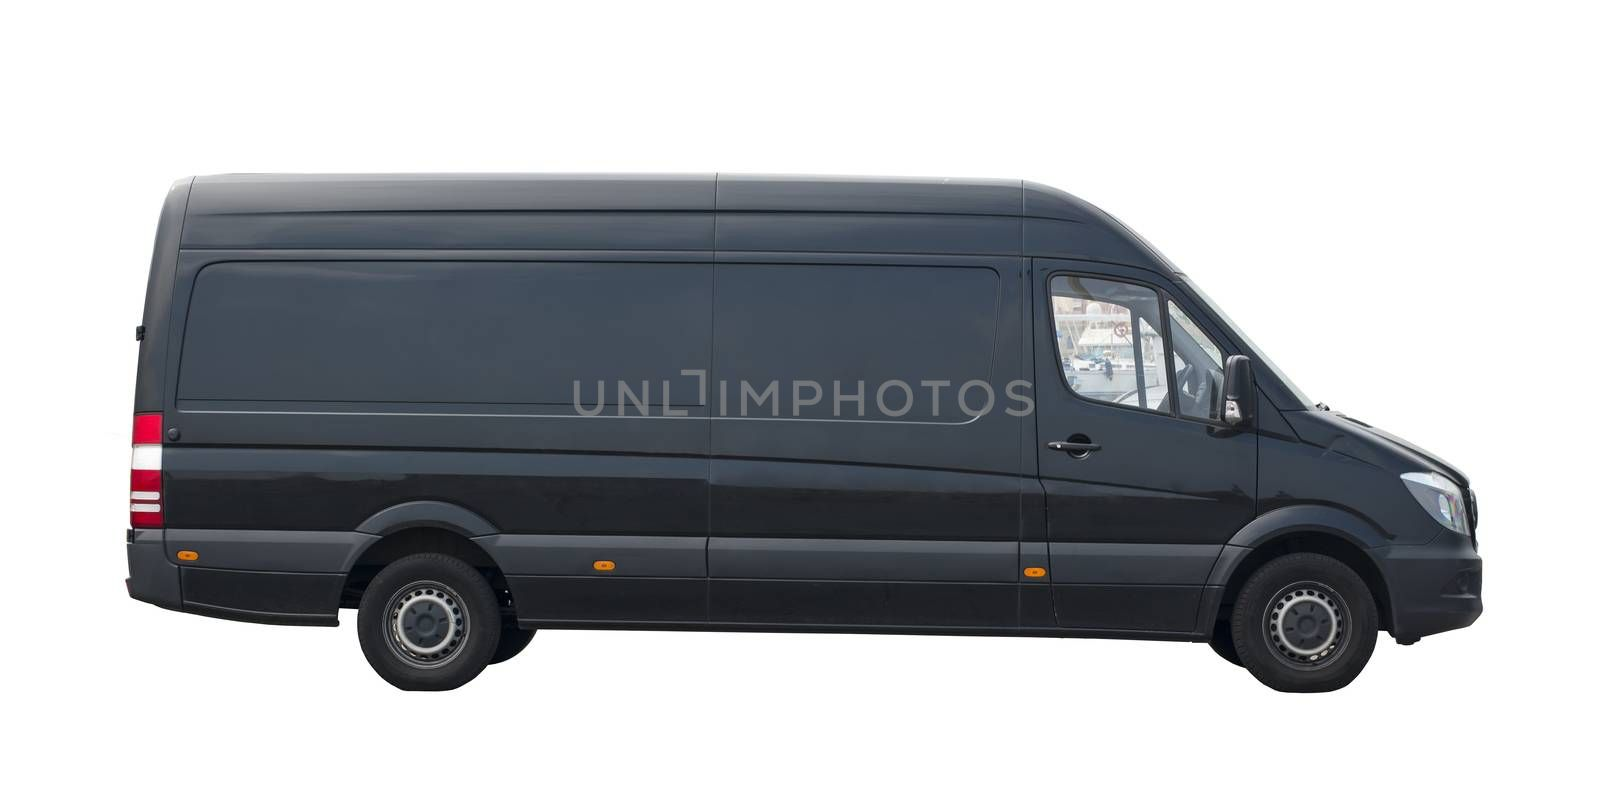 Transportation van on the white background. Empty space for your branding. Front view